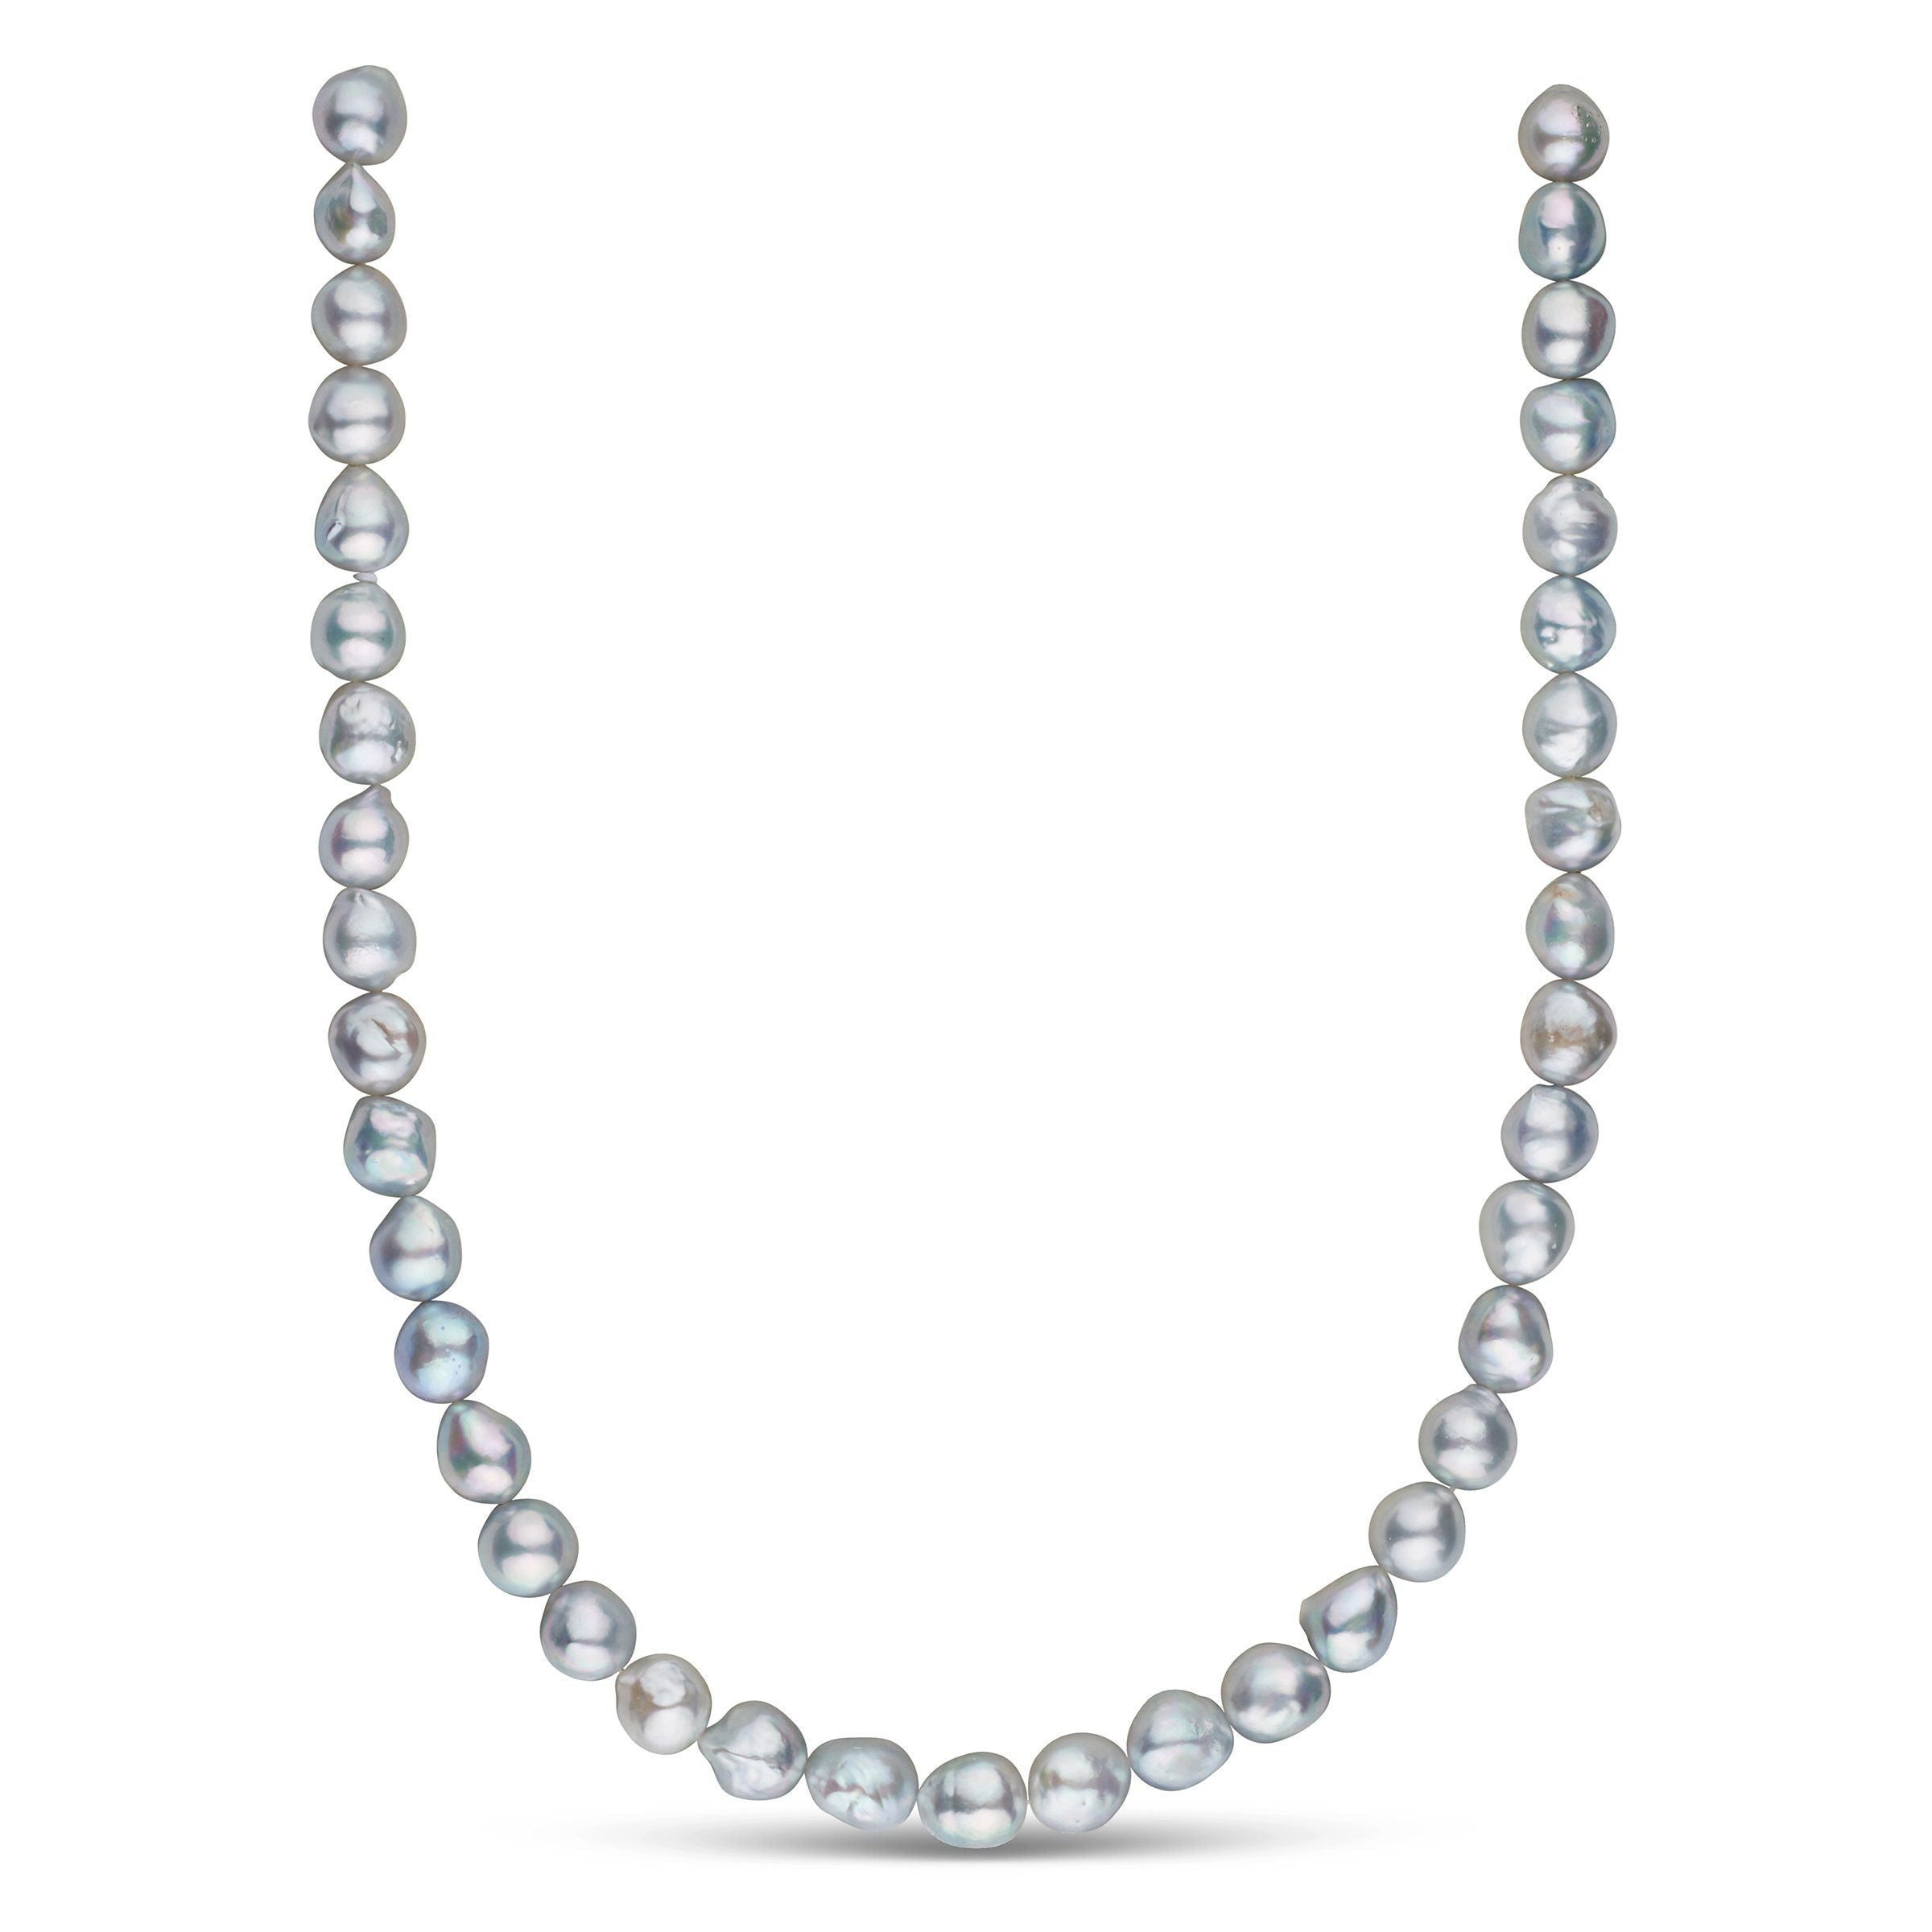 9.0-9.5 mm 18 Inch Silver-Blue Akoya Baroque Pearl Necklace